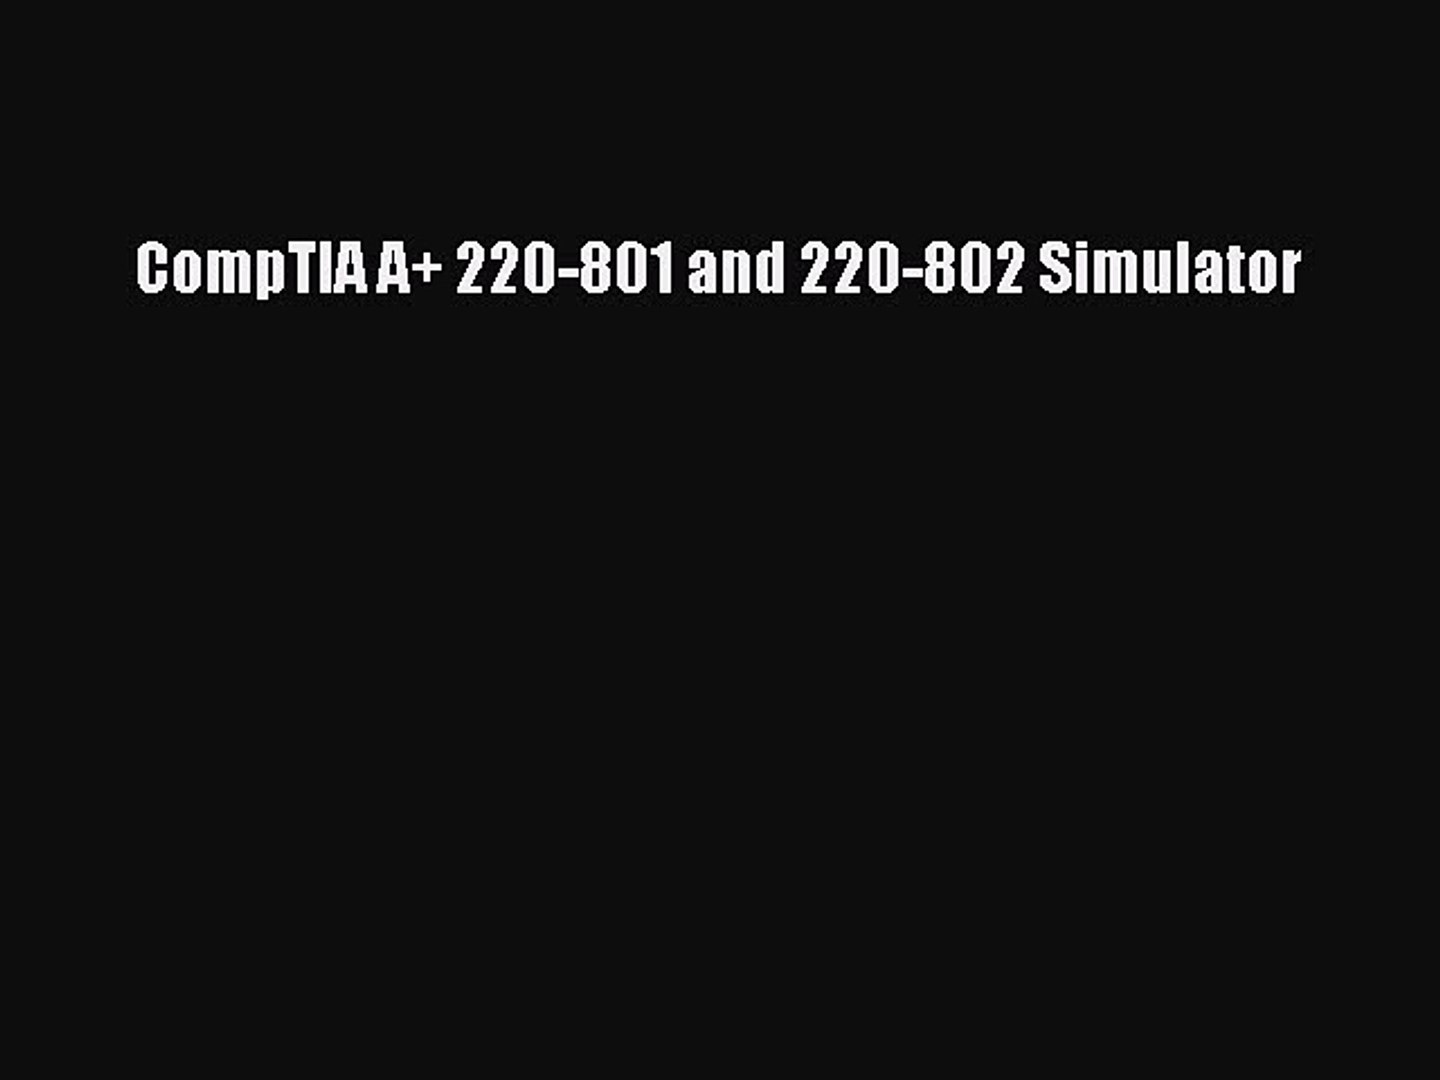 Download CompTIA A+ 220-801 and 220-802 Simulator PDF Online